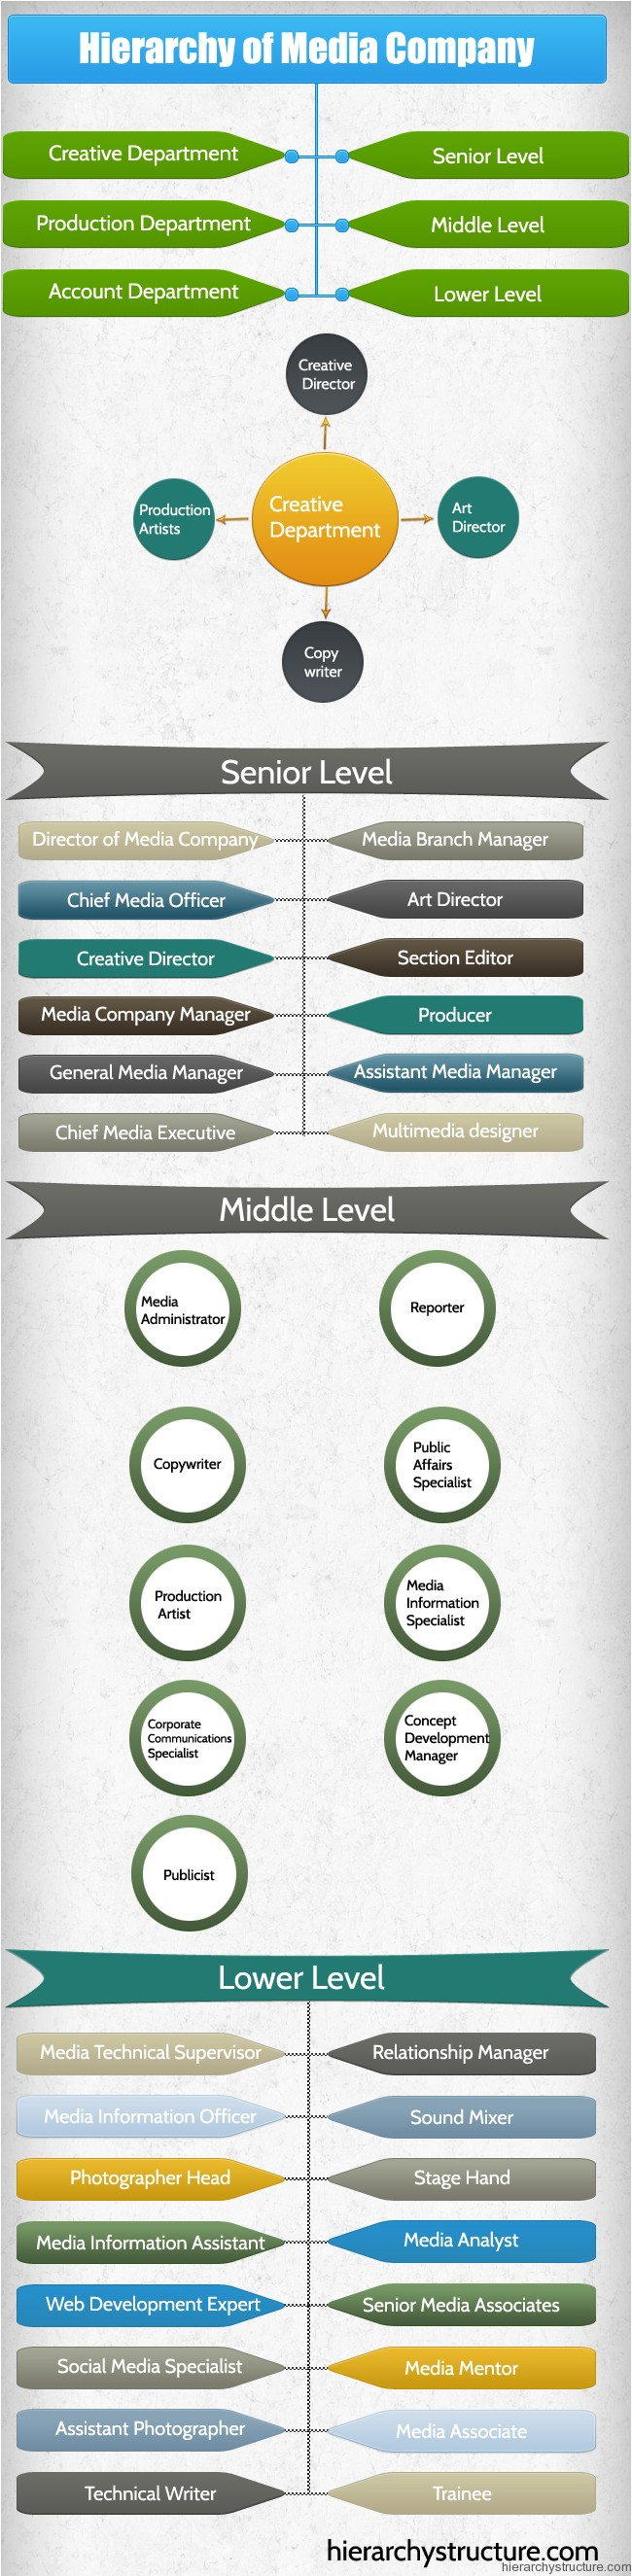 how to get a job in media production